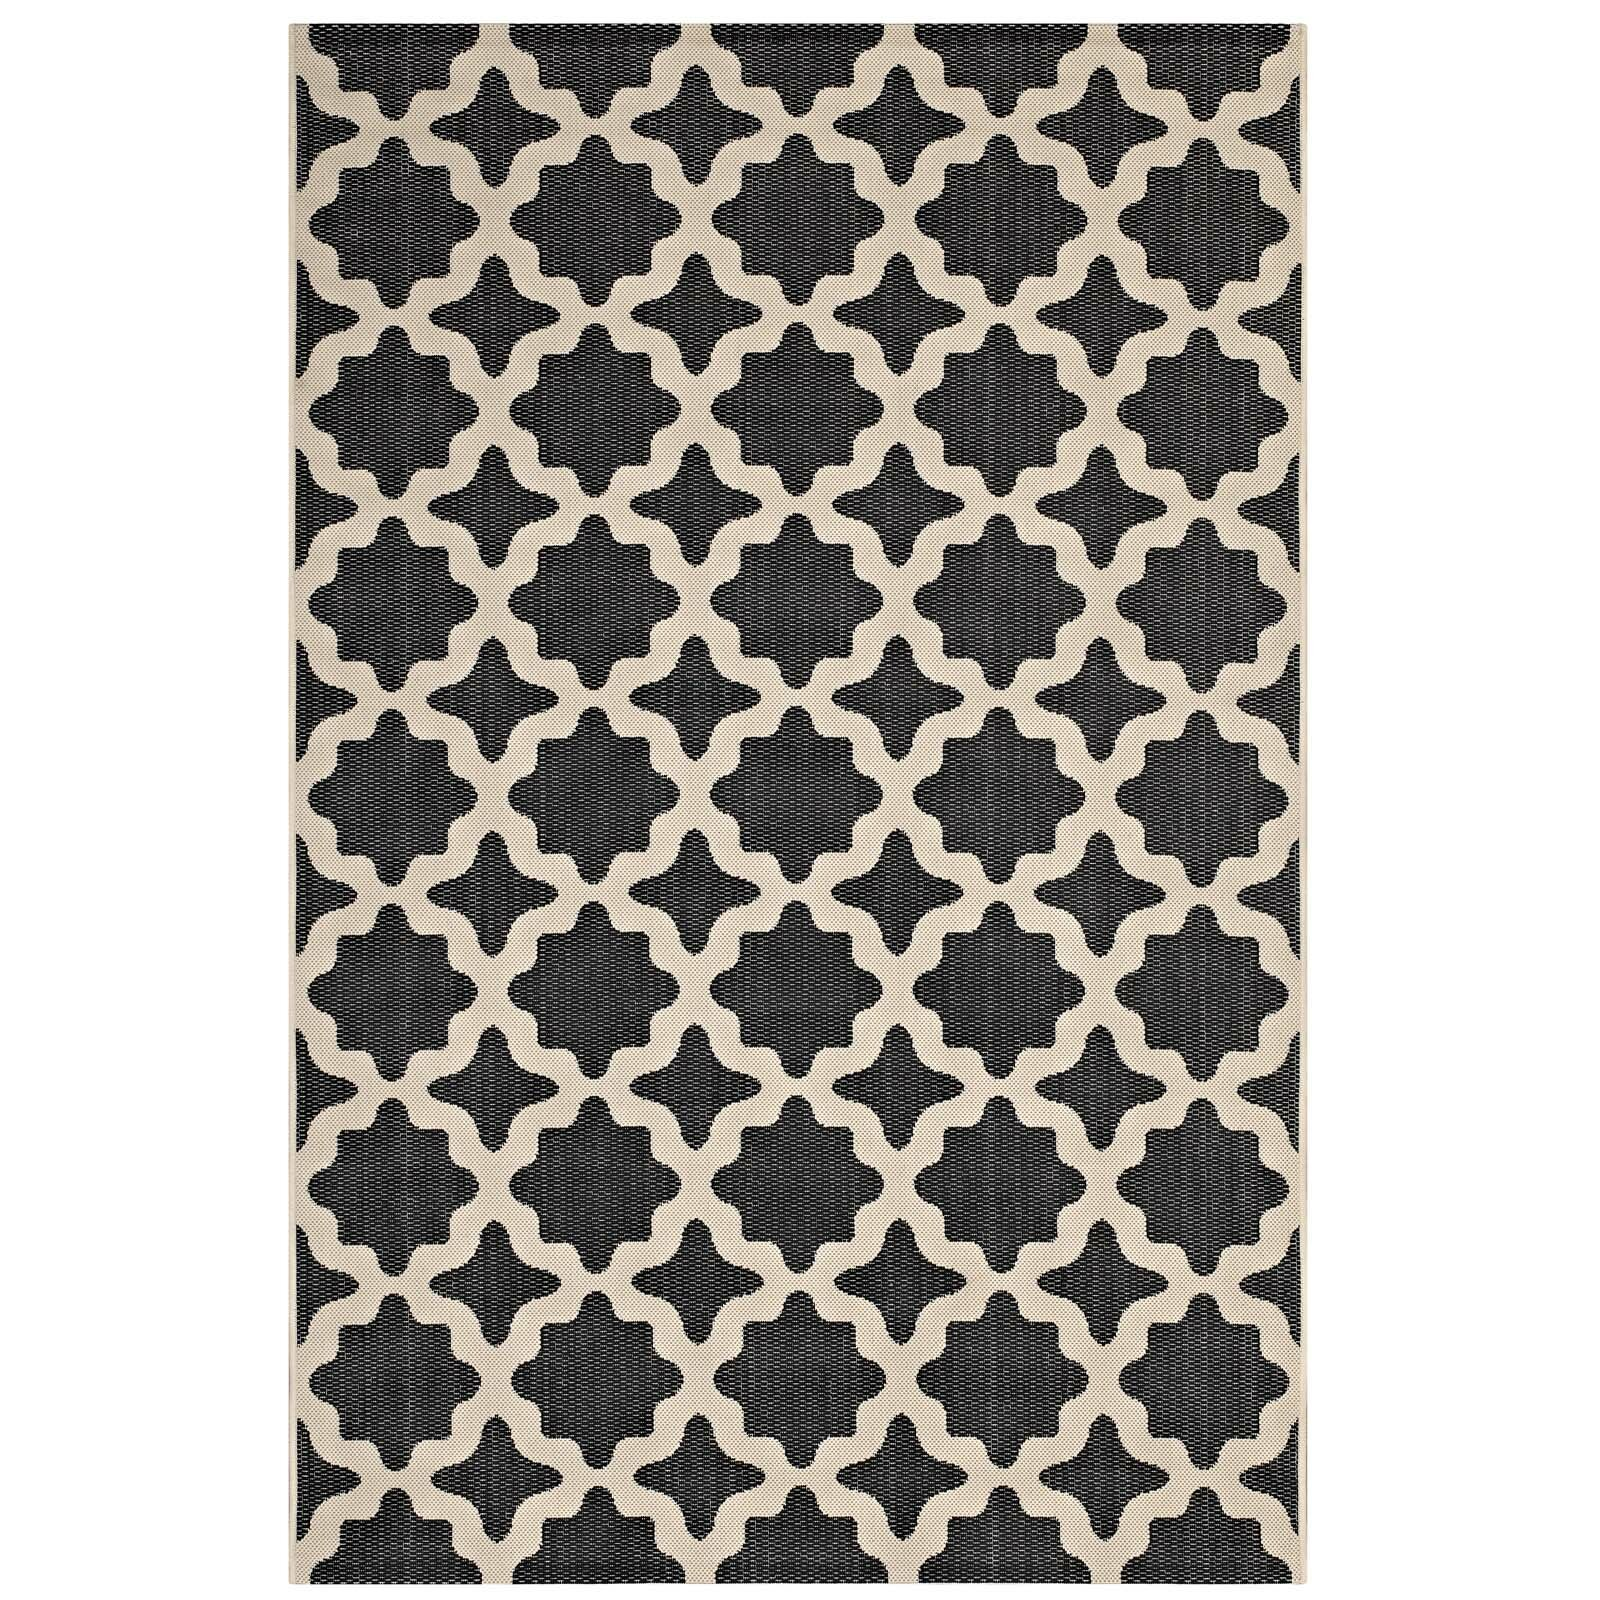 arabesque beige decor mat home acrylic cor style room tufted trellis hand design itm rug hong d pattern kong